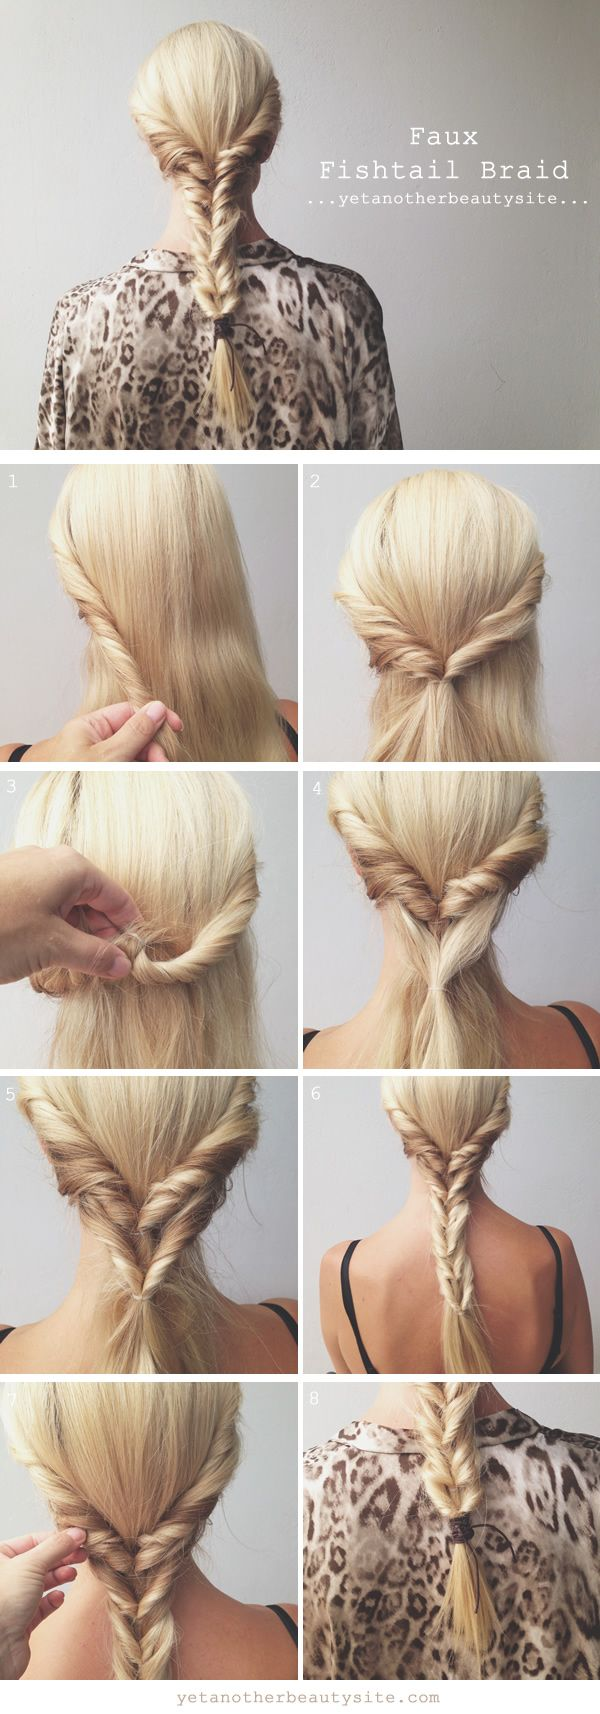 quick and easy faux fishtail braid (plait) hairstyle tutorial